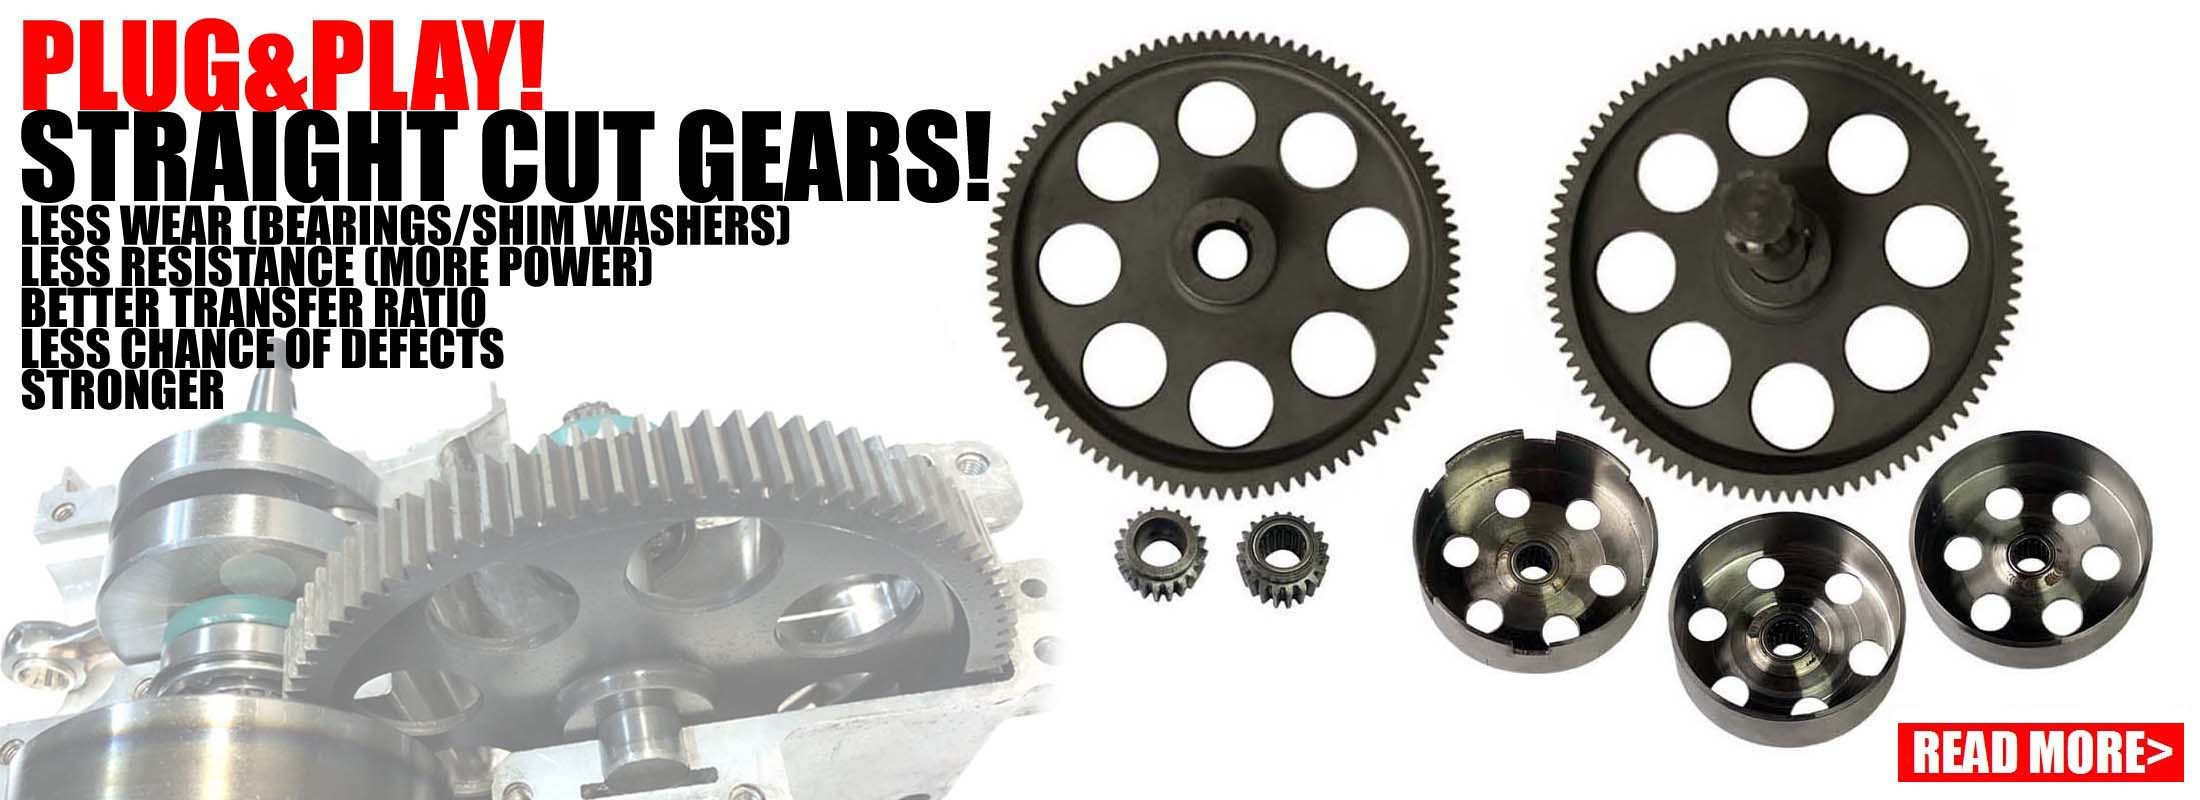 Straight cut gears